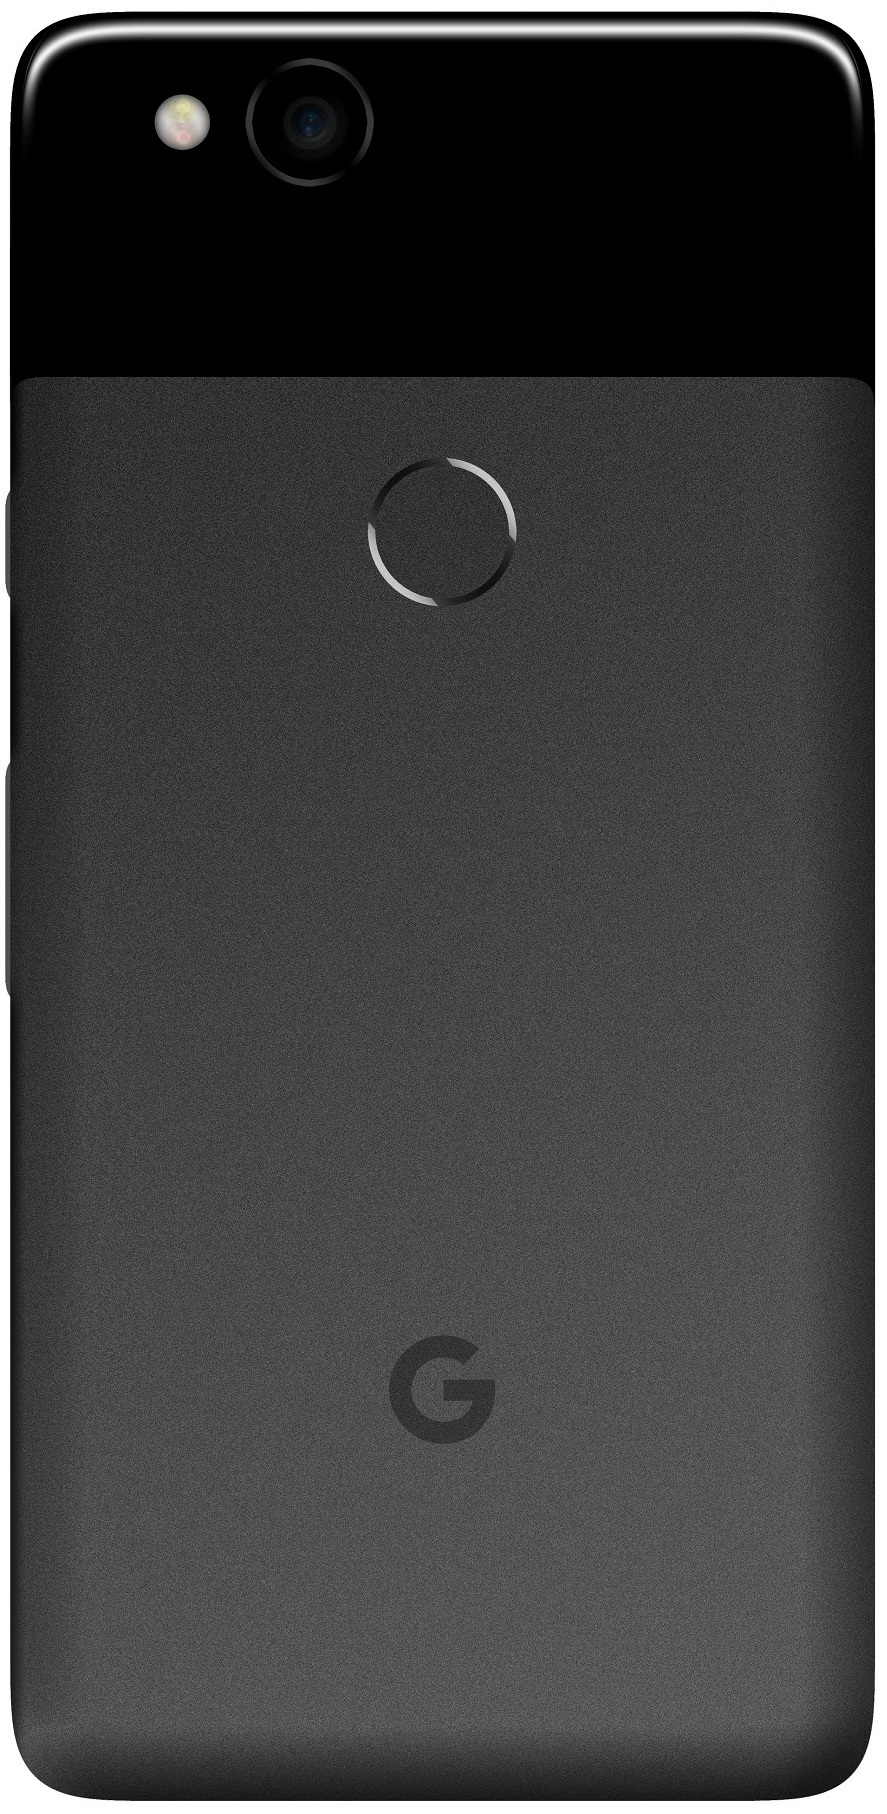 Offerta Google Pixel 2 64gb su TrovaUsati.it